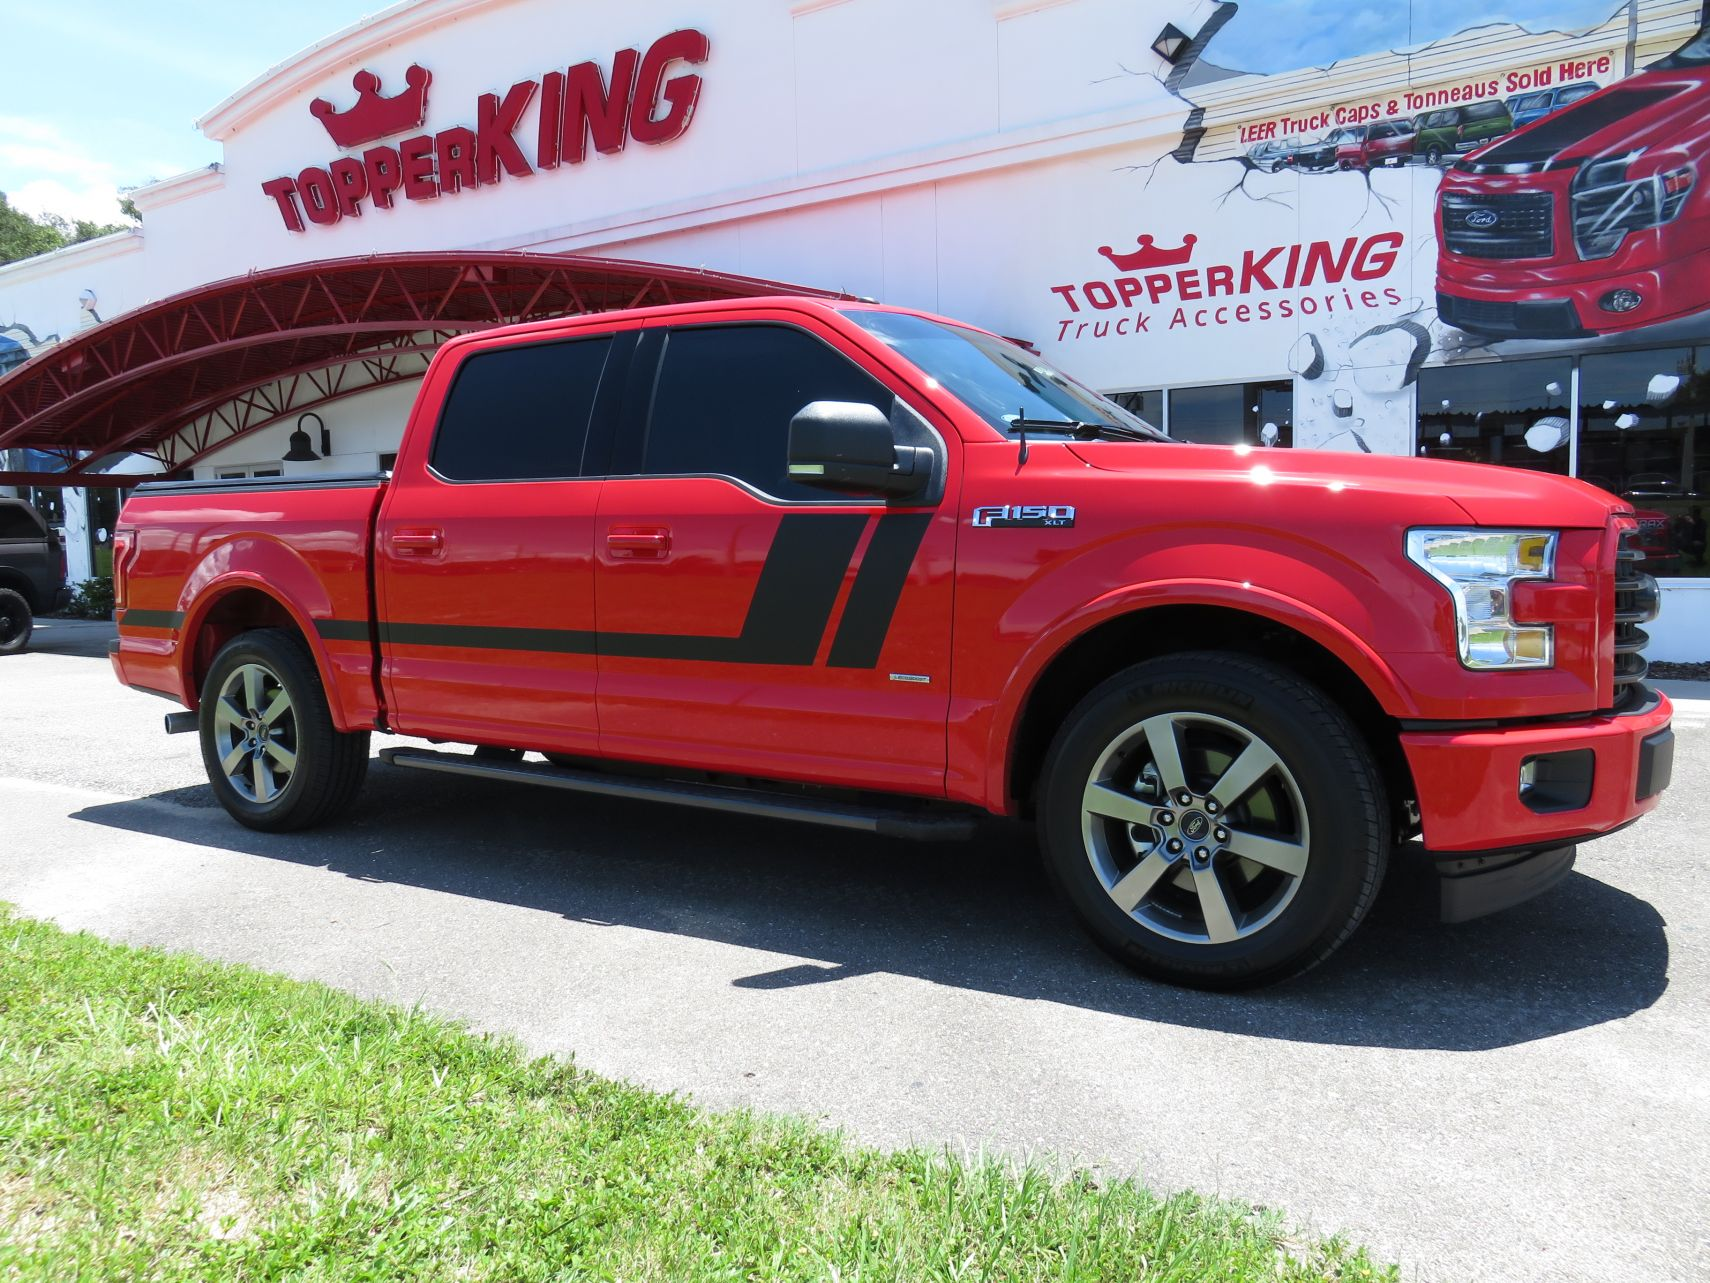 2017 Ford F150 with Soft Tonneau, Graphics, Running Boards, Tint, and Custom Hitch by TopperKING in Brandon, FL 813-689-2449 or Clearwater, FL 727-530-9066. Call today!